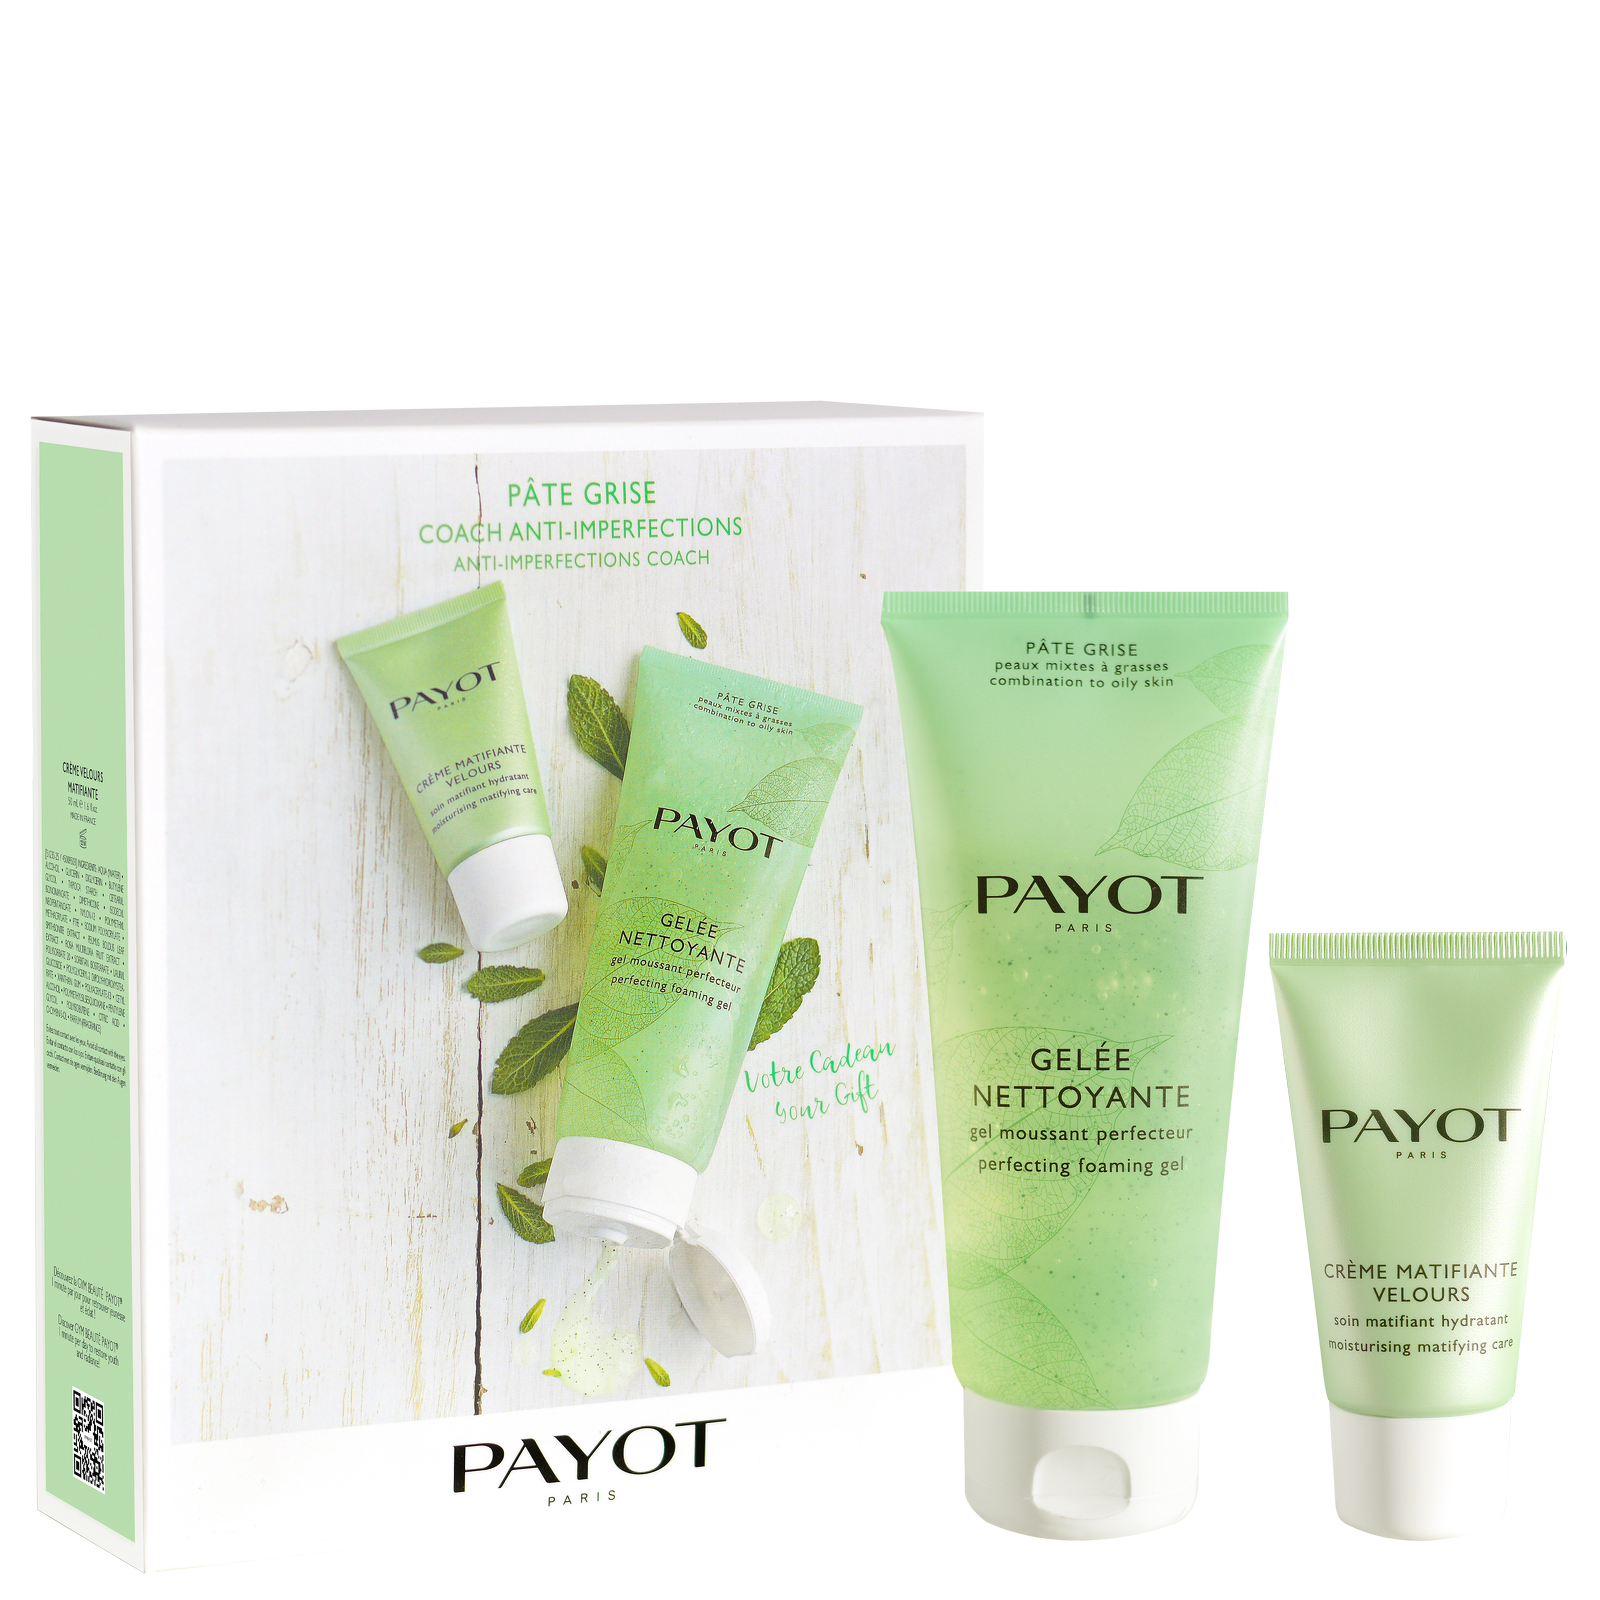 Payot Paris Gifts & Sets Pate Grise Anti-Imperfections Coach Set